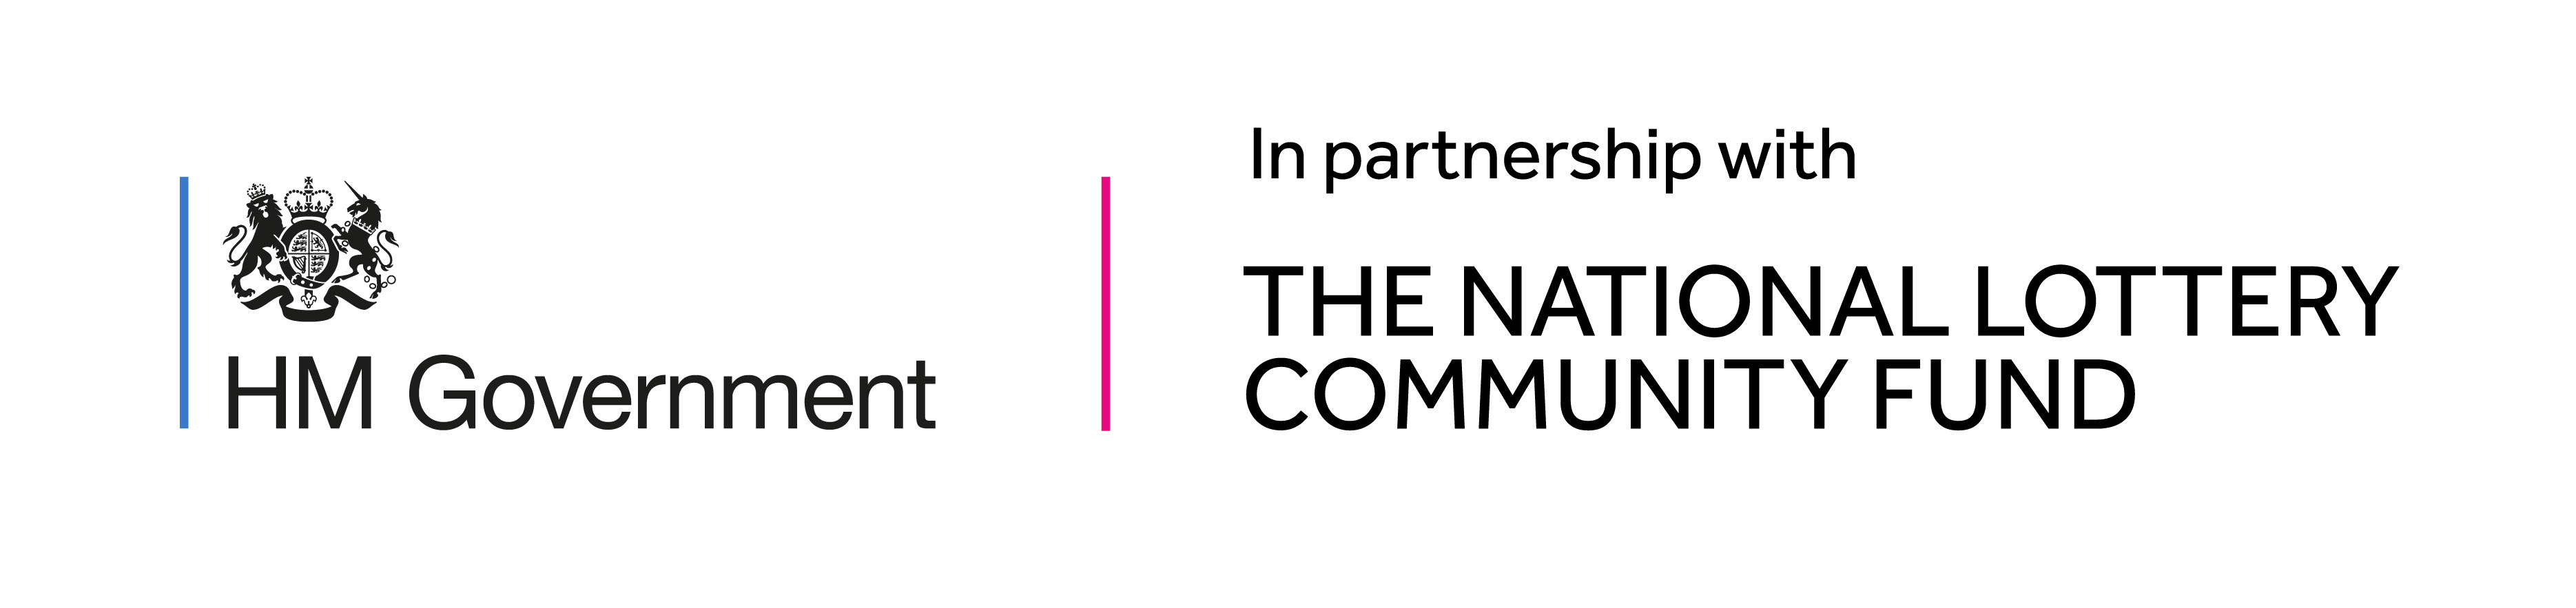 Sharing your story | The National Lottery Community Fund